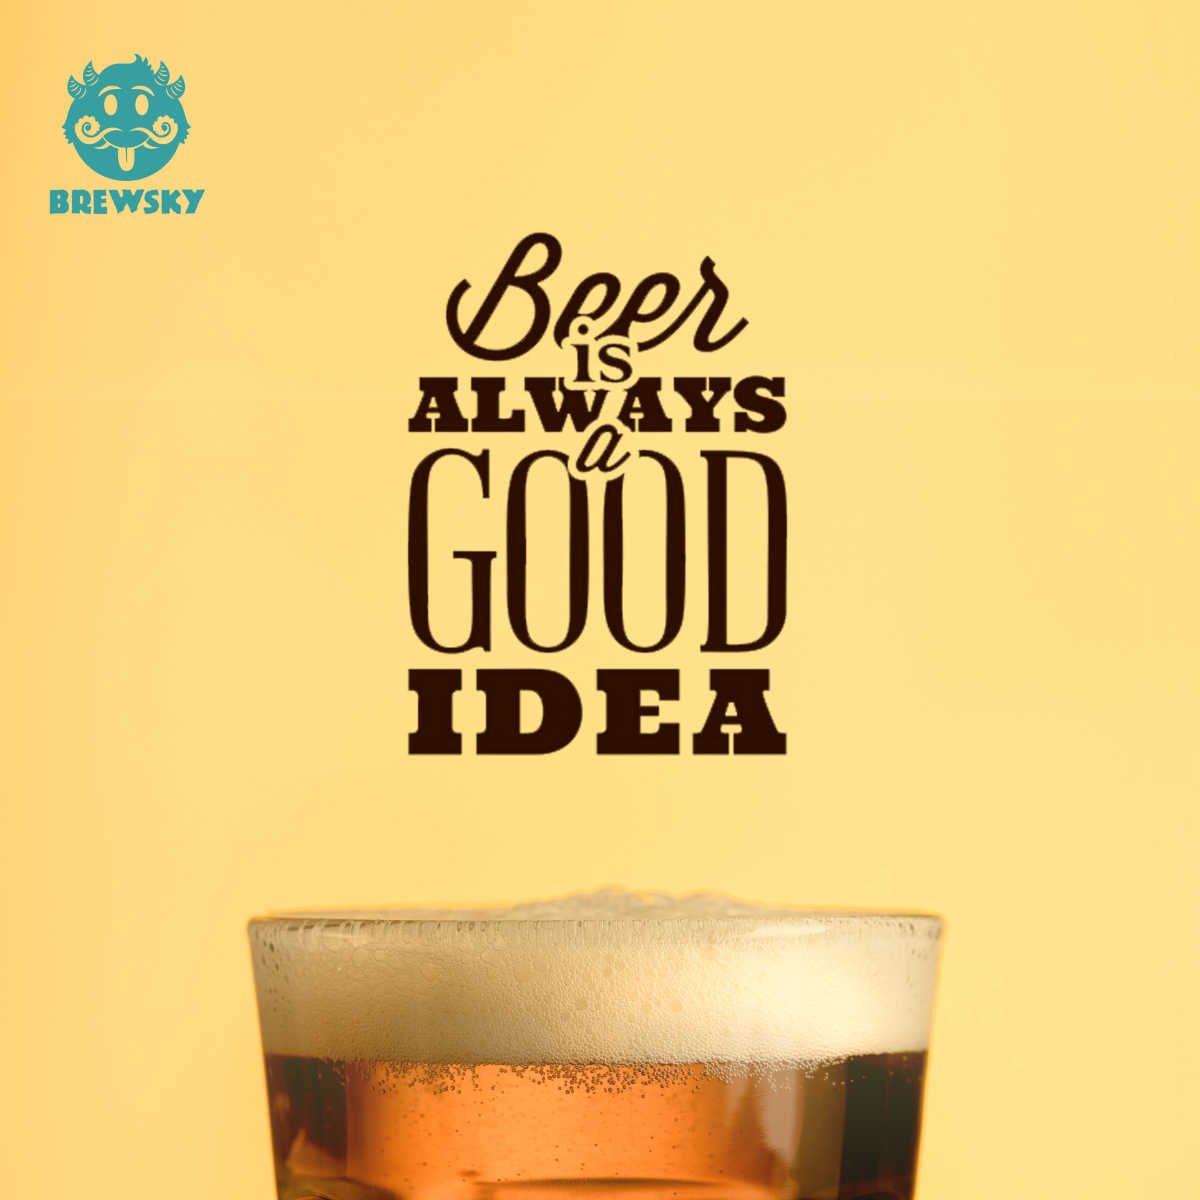 Brewsky Beer Highlight ideas